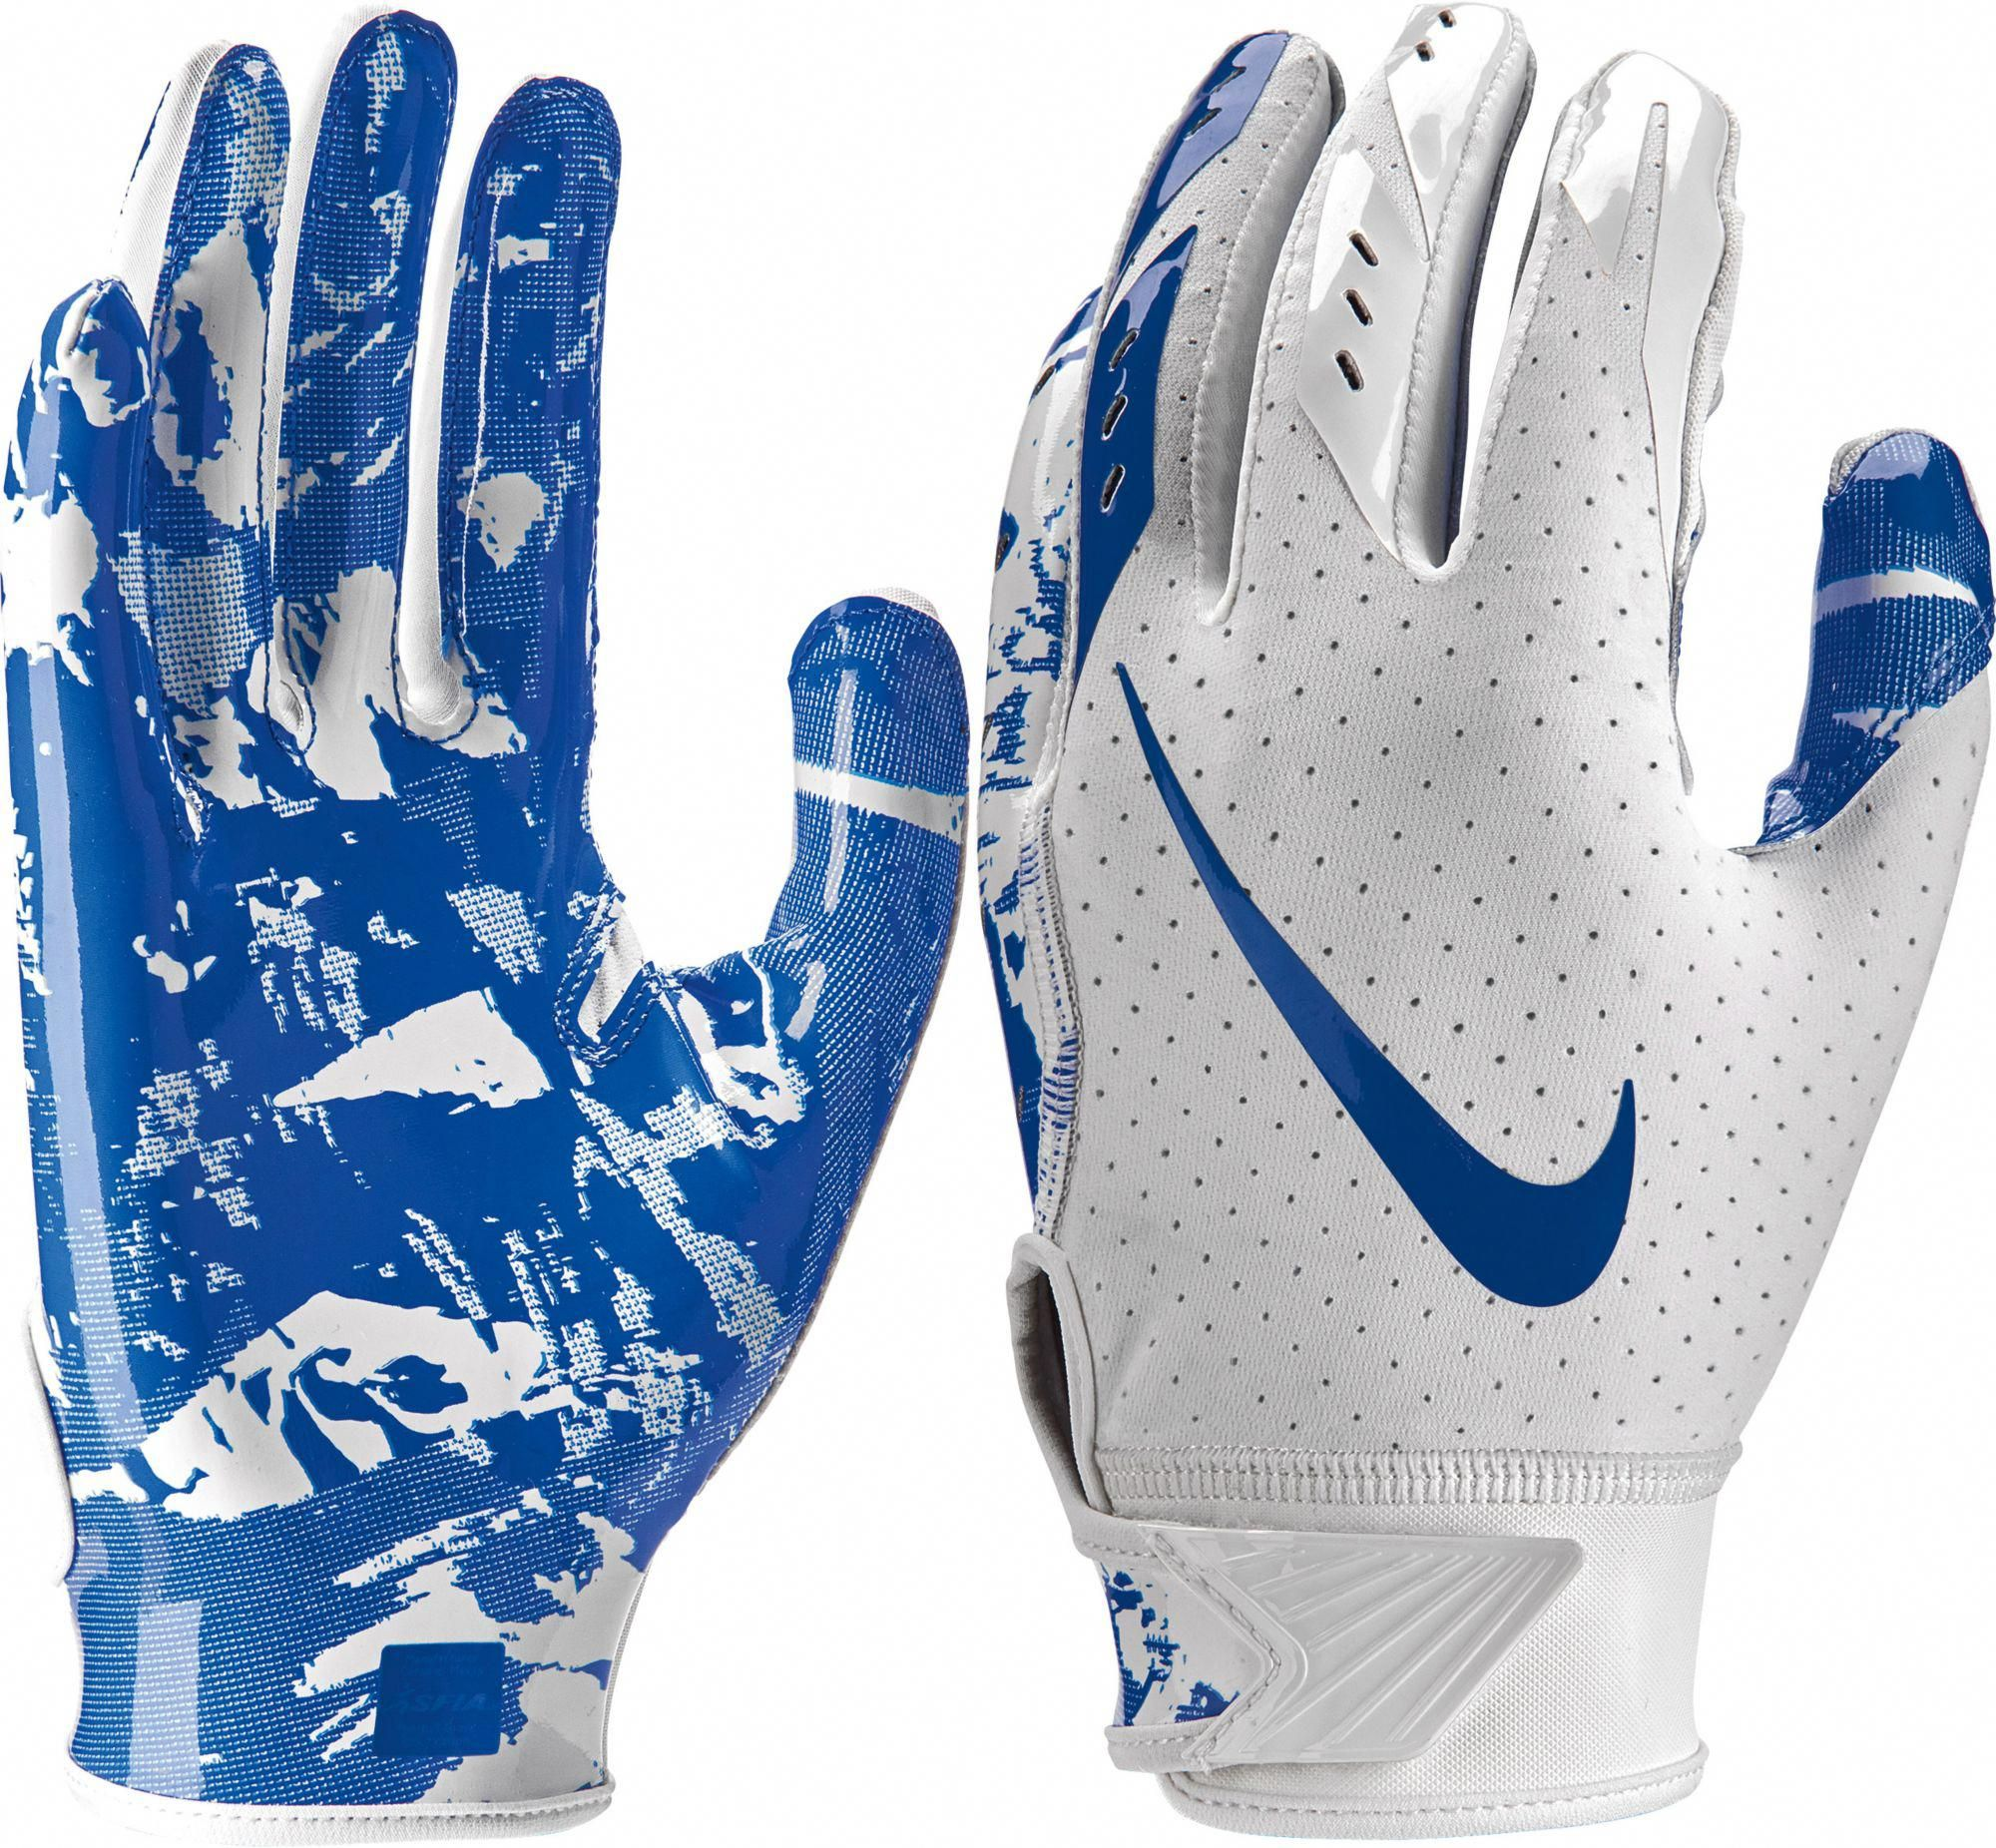 Nike Youth Vapor Jet 5 0 Receiver Gloves 2018 White Vaporizers Porcelain Figurines Antiques Football Gloves Nike